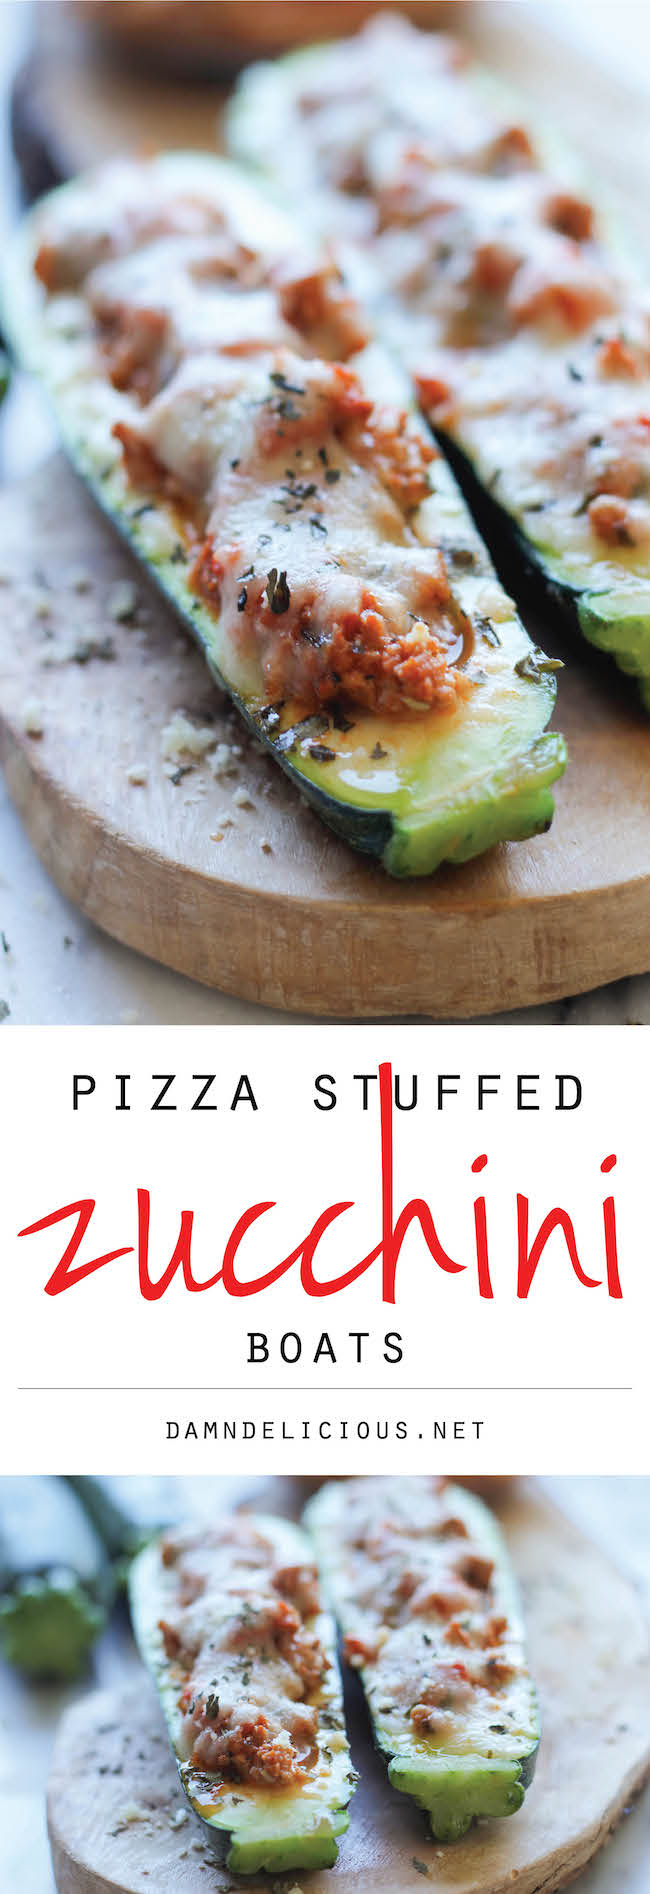 Pizza Stuffed Zucchini Boats - These healthy zucchini boats offer cheesy comfort without the guilt!